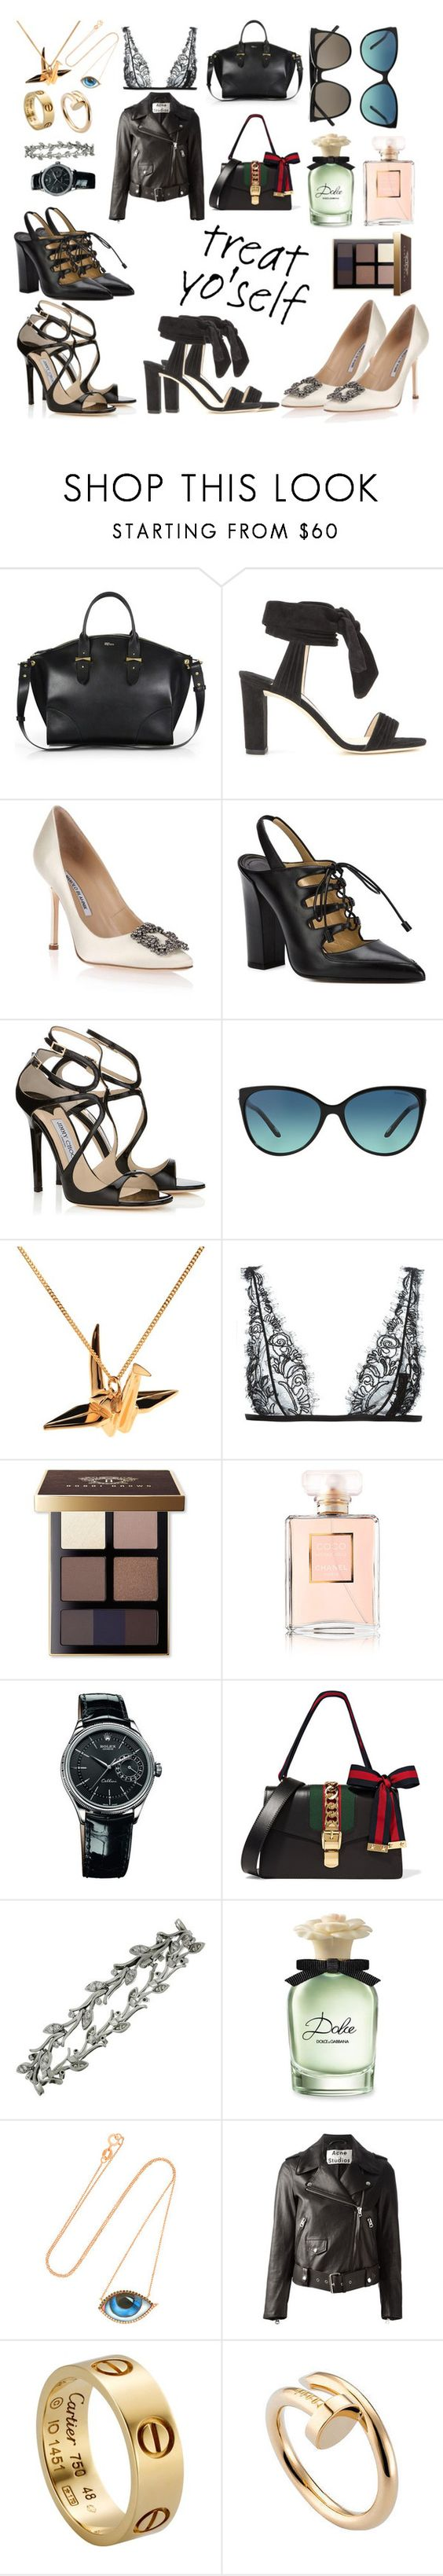 """Treat Yo' Self"" by gabriela-ignatova ❤ liked on Polyvore featuring Alexander McQueen, Jimmy Choo, Manolo Blahnik, Paul Andrew, Tiffany & Co., Origami Jewellery, La Perla, Bobbi Brown Cosmetics, Chanel and Rolex"